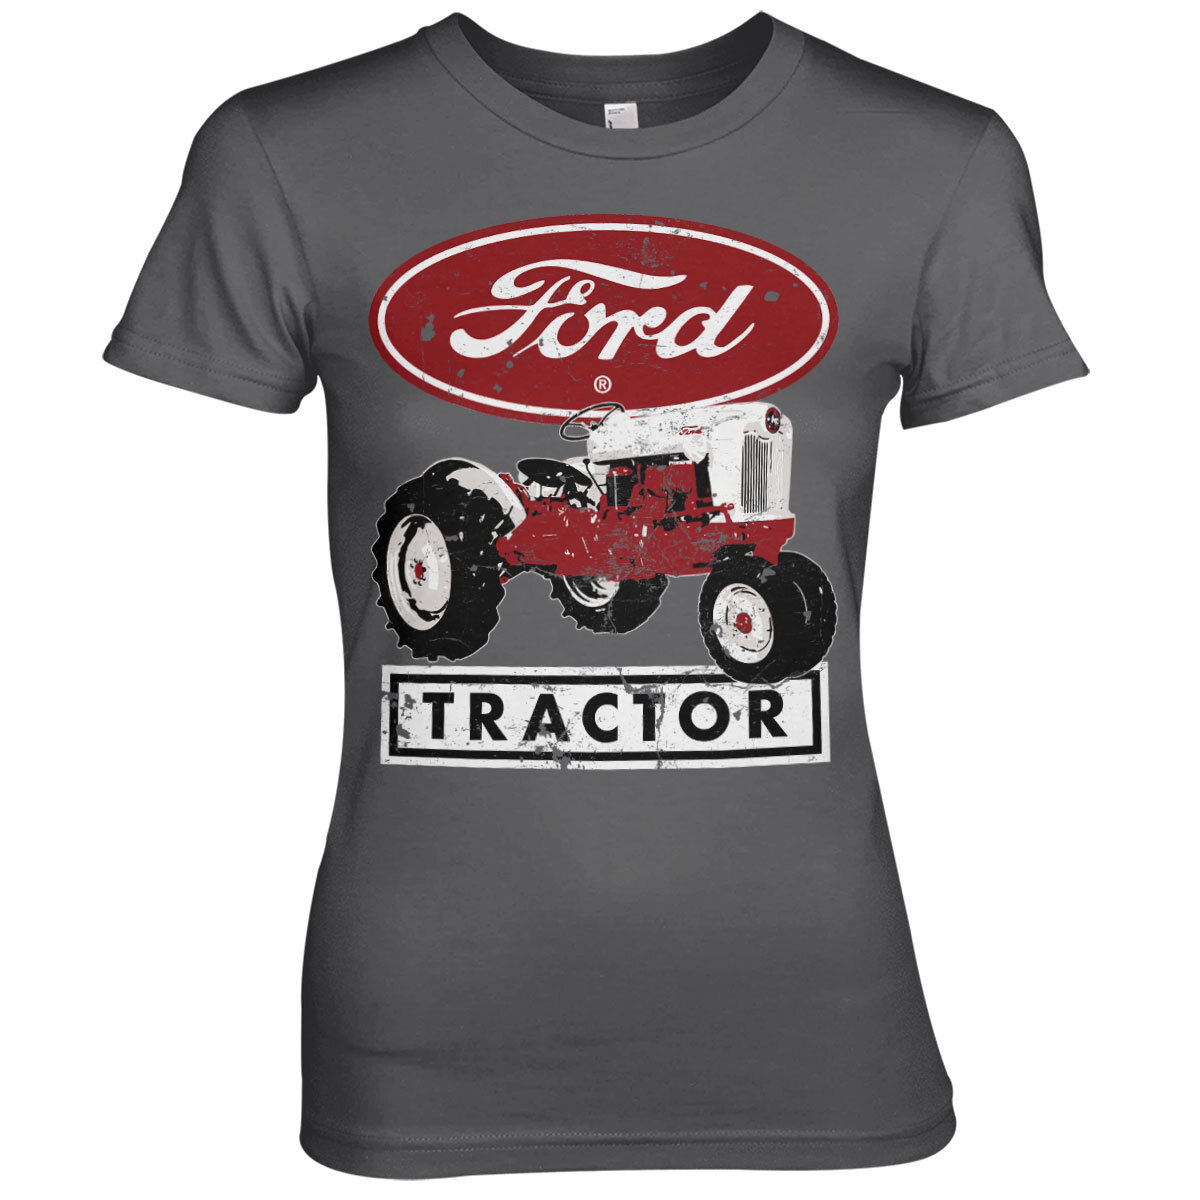 Ford Tractor Girly Tee